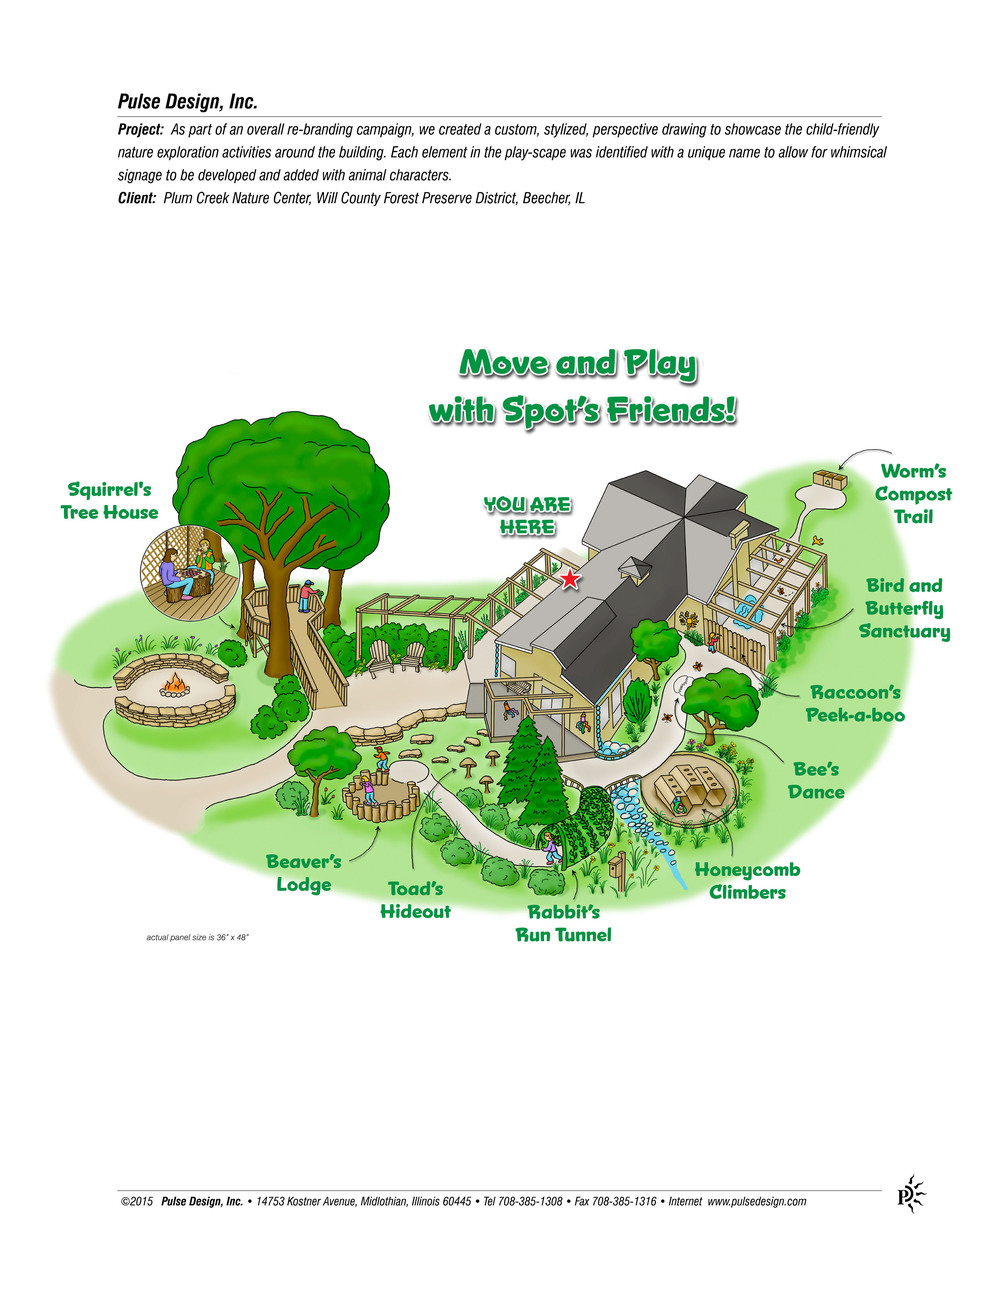 Plum-Creek-Spots-Playground-Map-Illustration-Pulse-Design-Inc.jpg